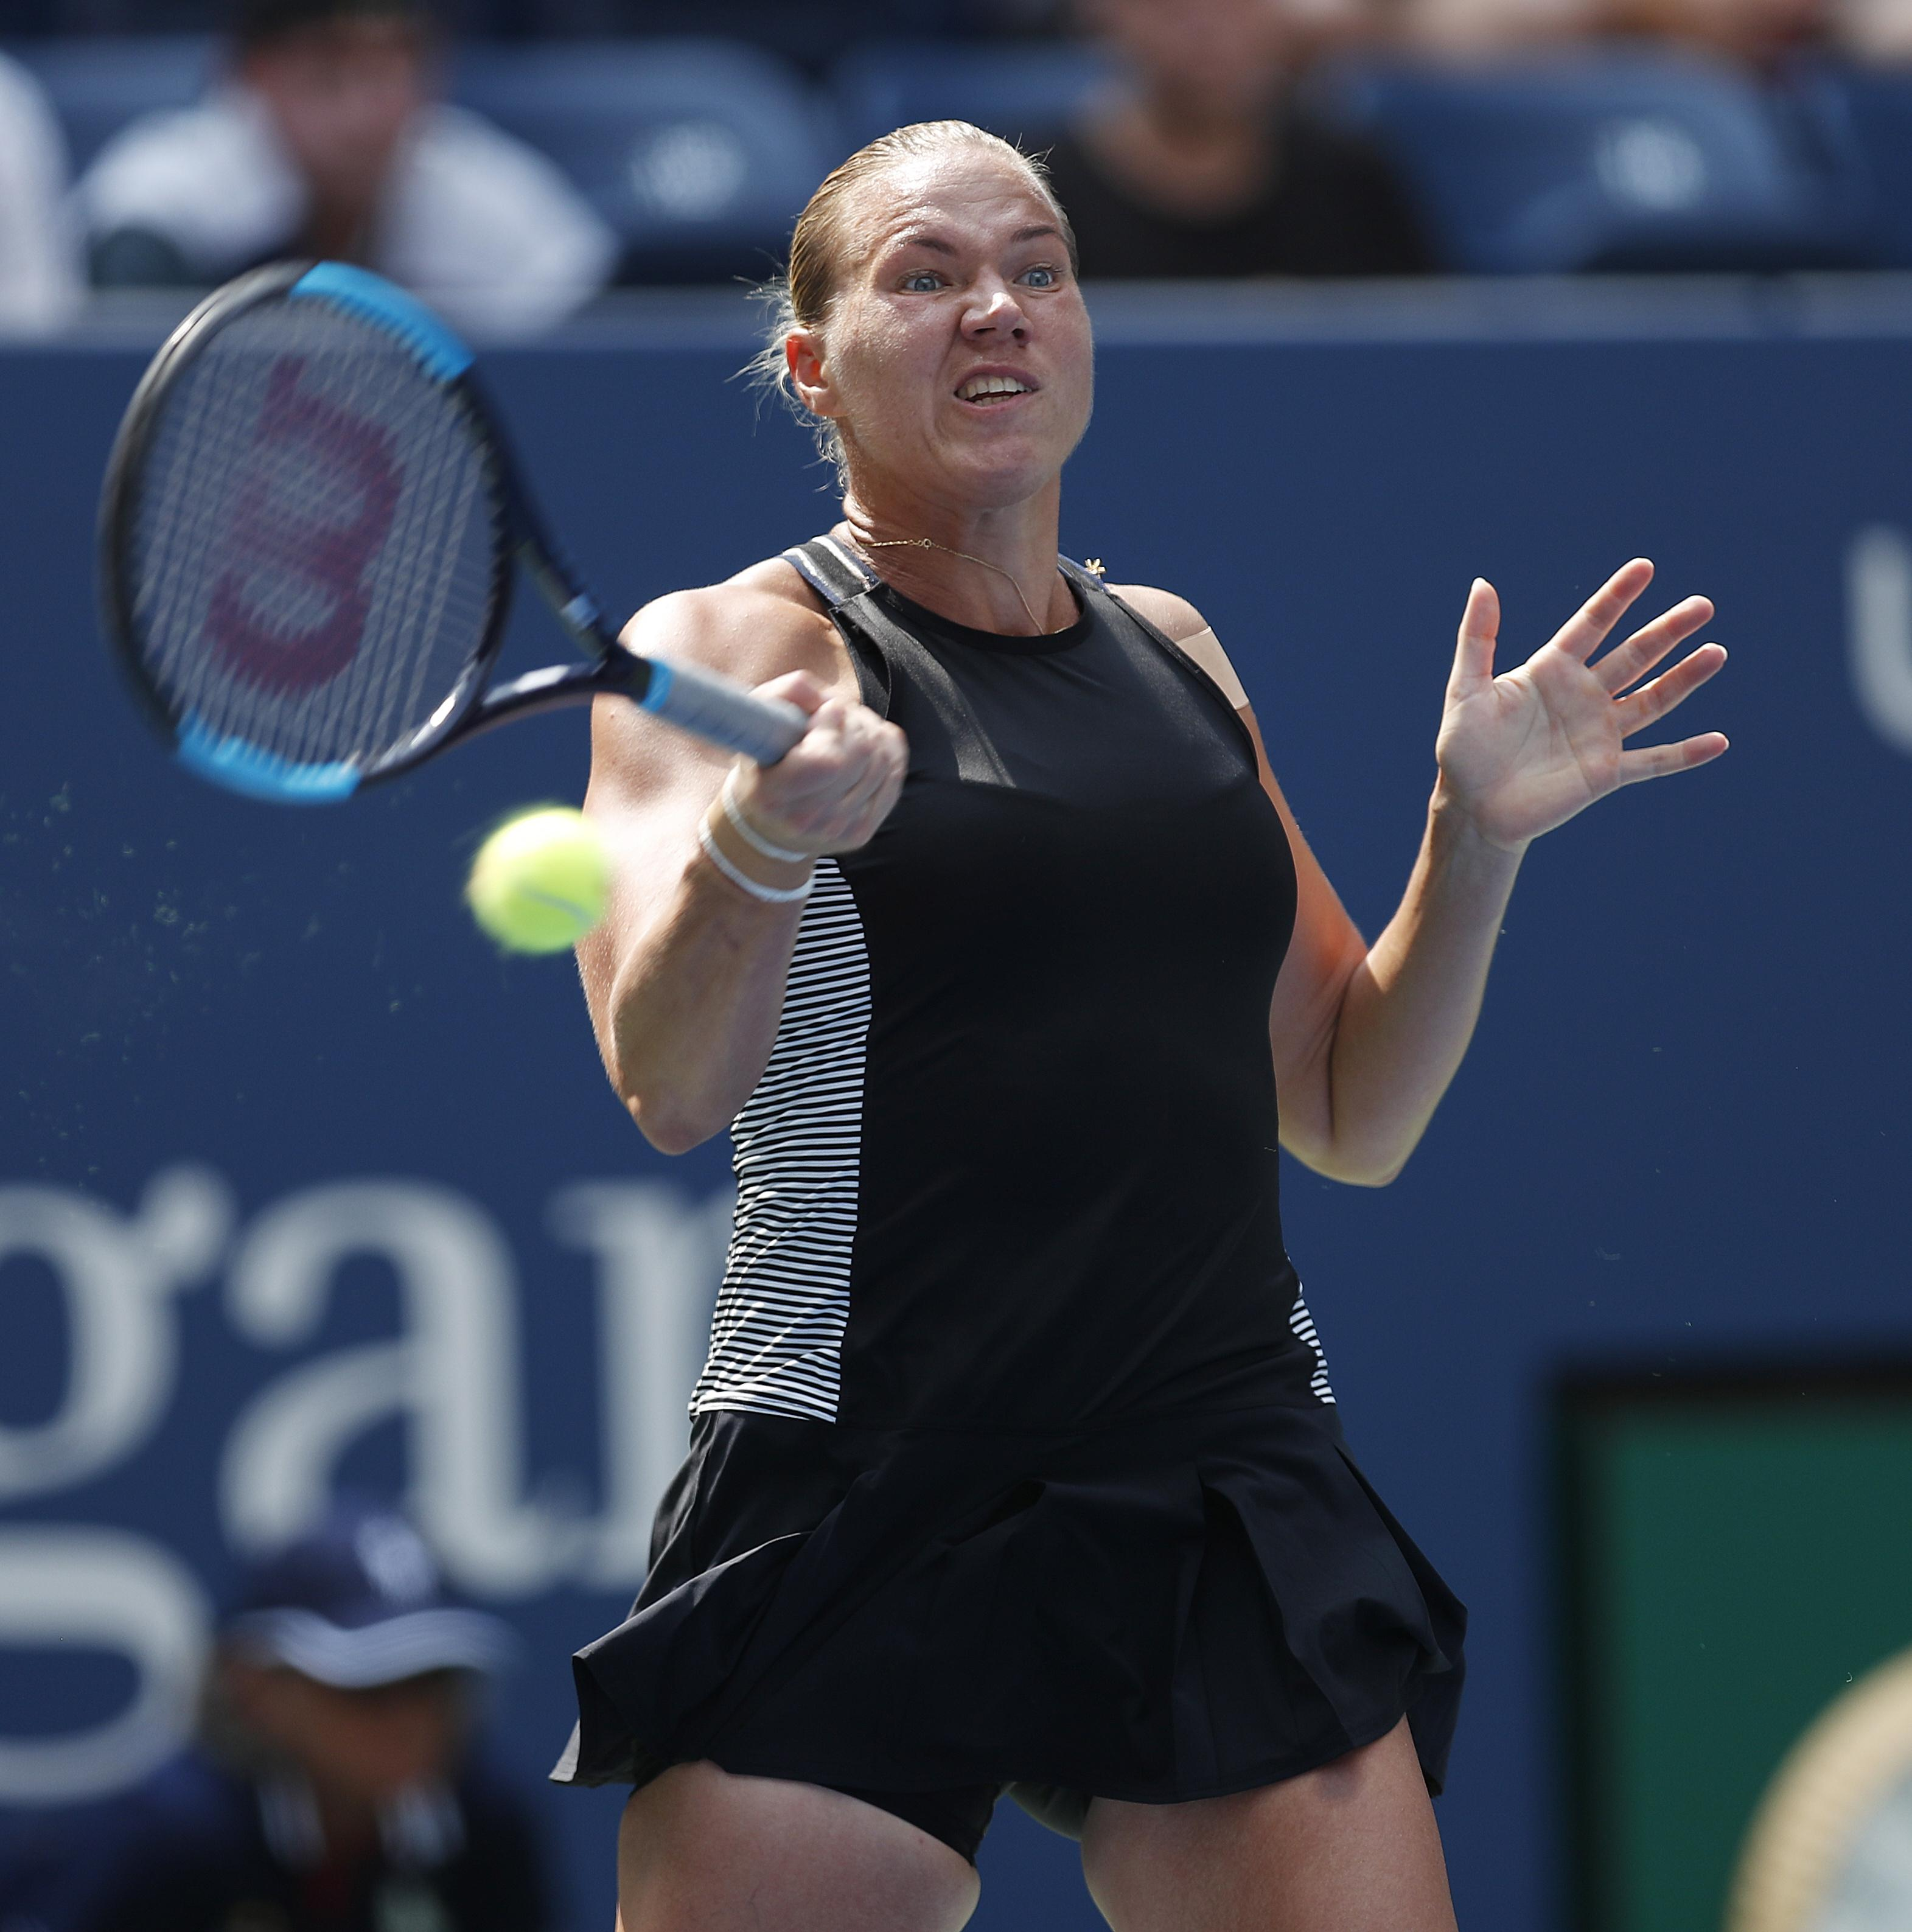 Kaia Kanepi beat Romanian Halep 6-2 6-4 in one hour and 15 minutes